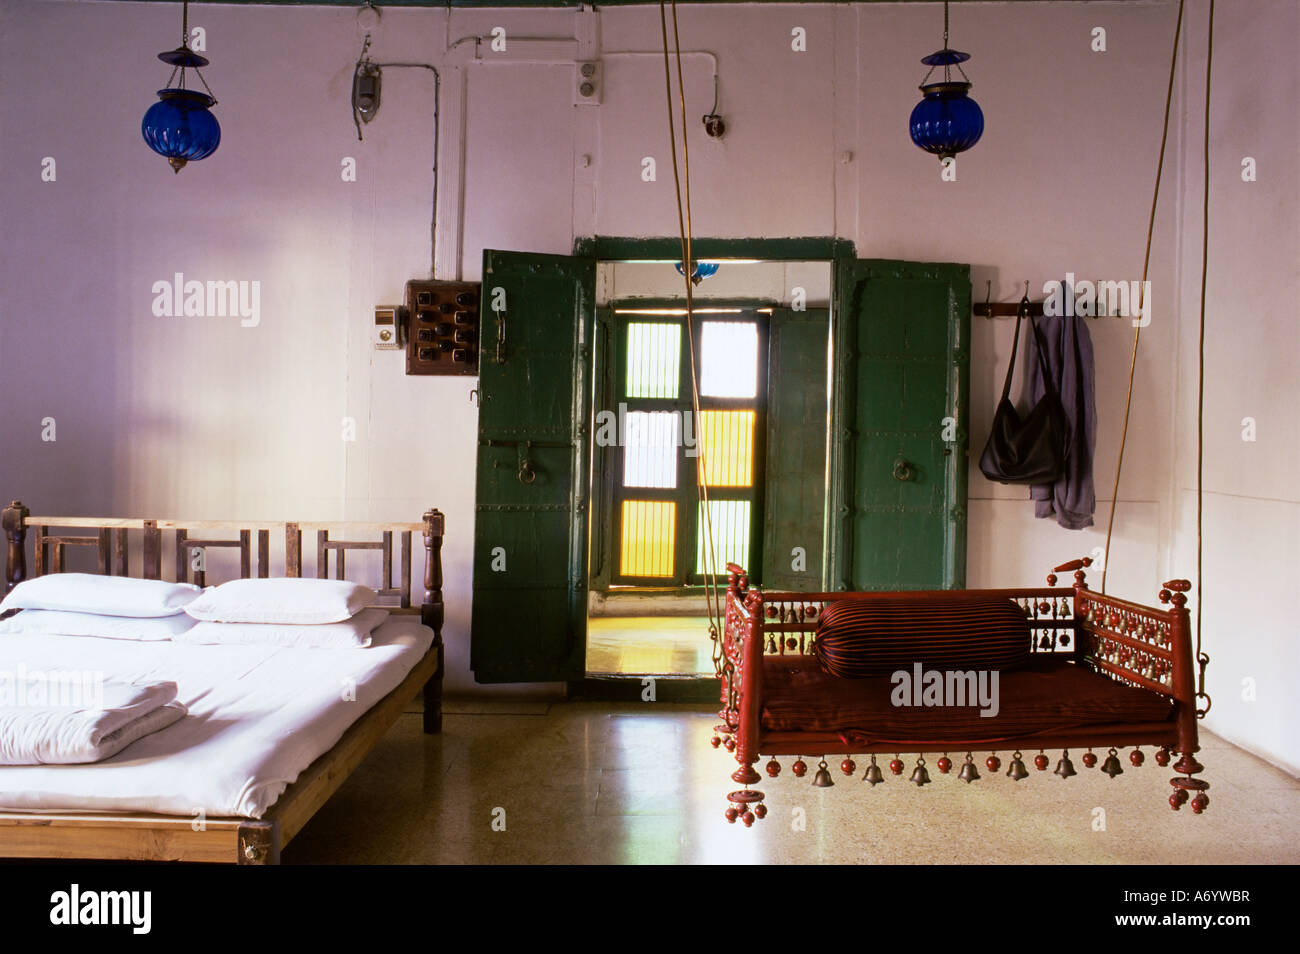 Swing Chair In Bedroom Bedroom With Traditional Hitchkar Suspended Swing Seat In Restored